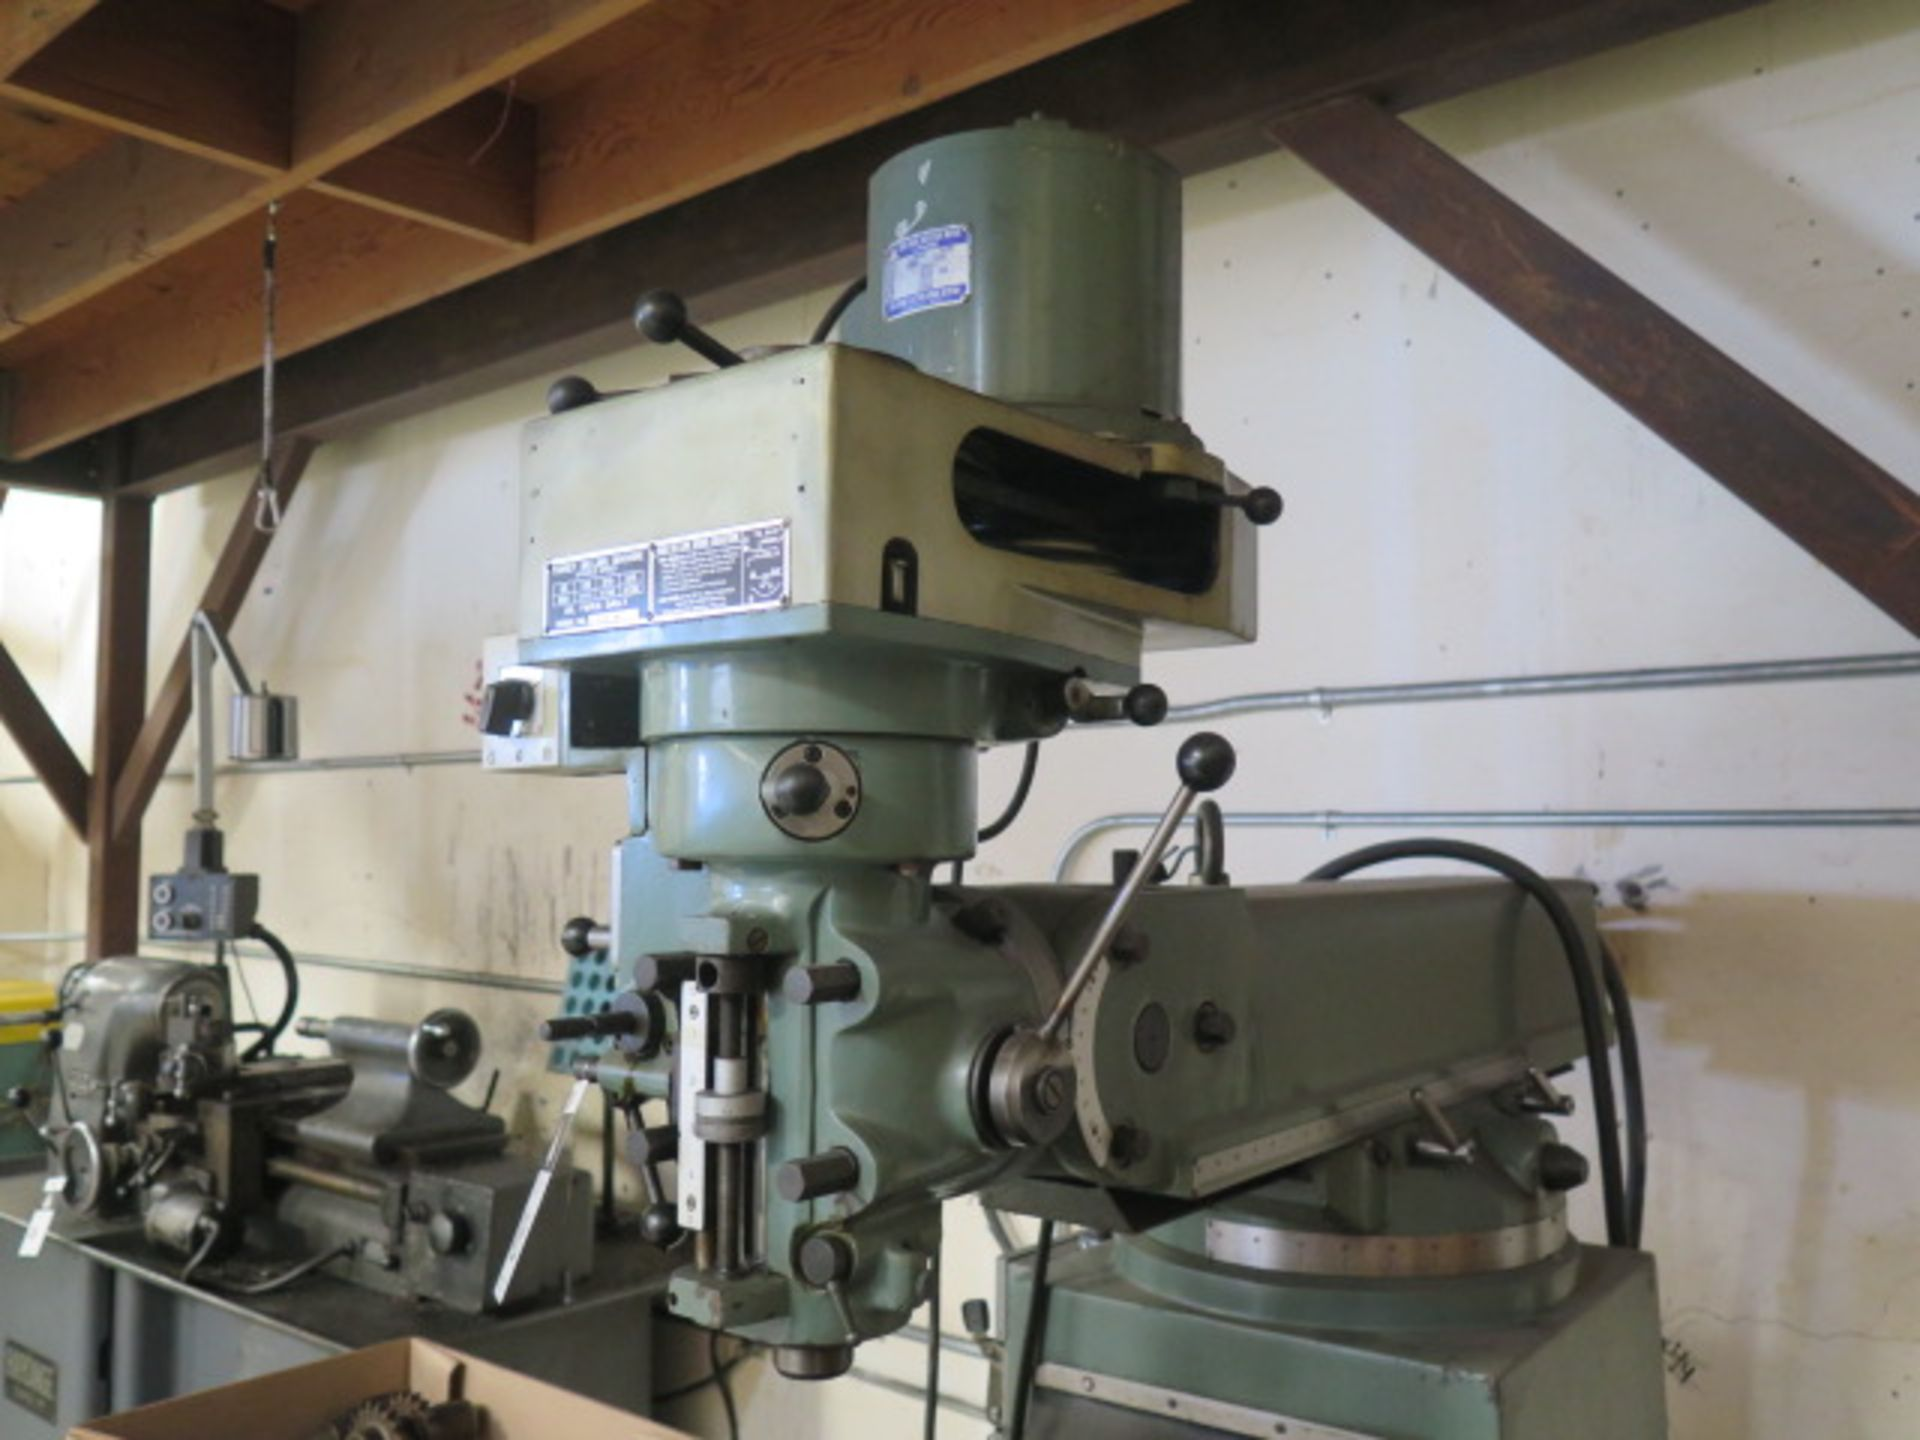 """Import Vertical Mill w/ 3Hp Motor, 80-2720 RPM, 8-Speeds, R8 Spindle, 10"""" x 48"""" Table (SOLD AS- - Image 3 of 9"""